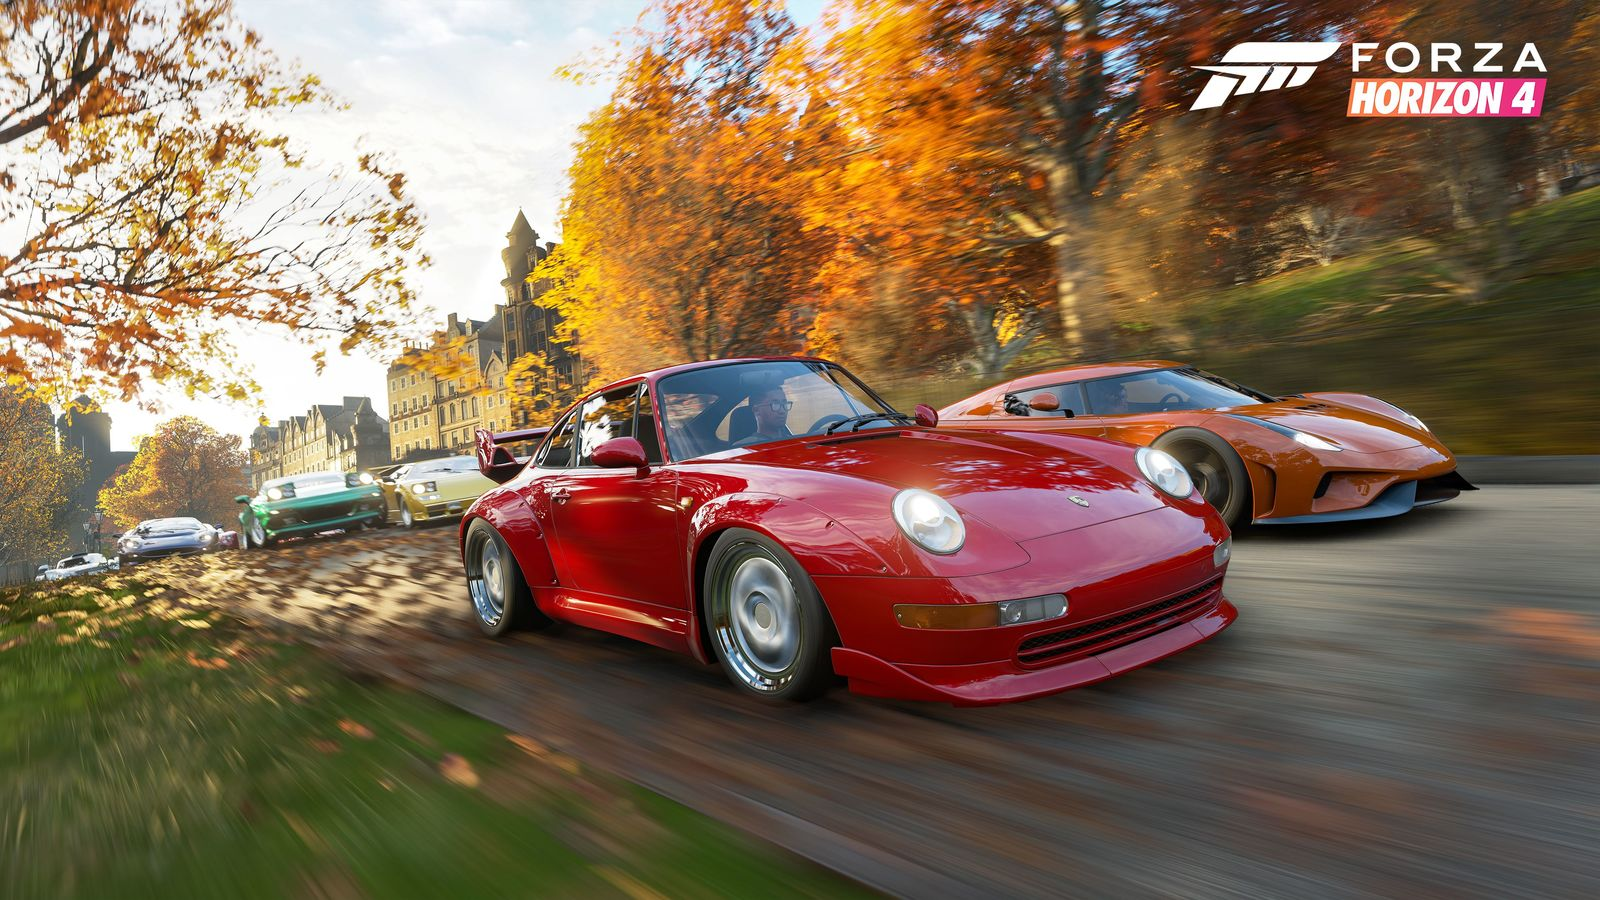 Image result for forza horizon 4 xbox